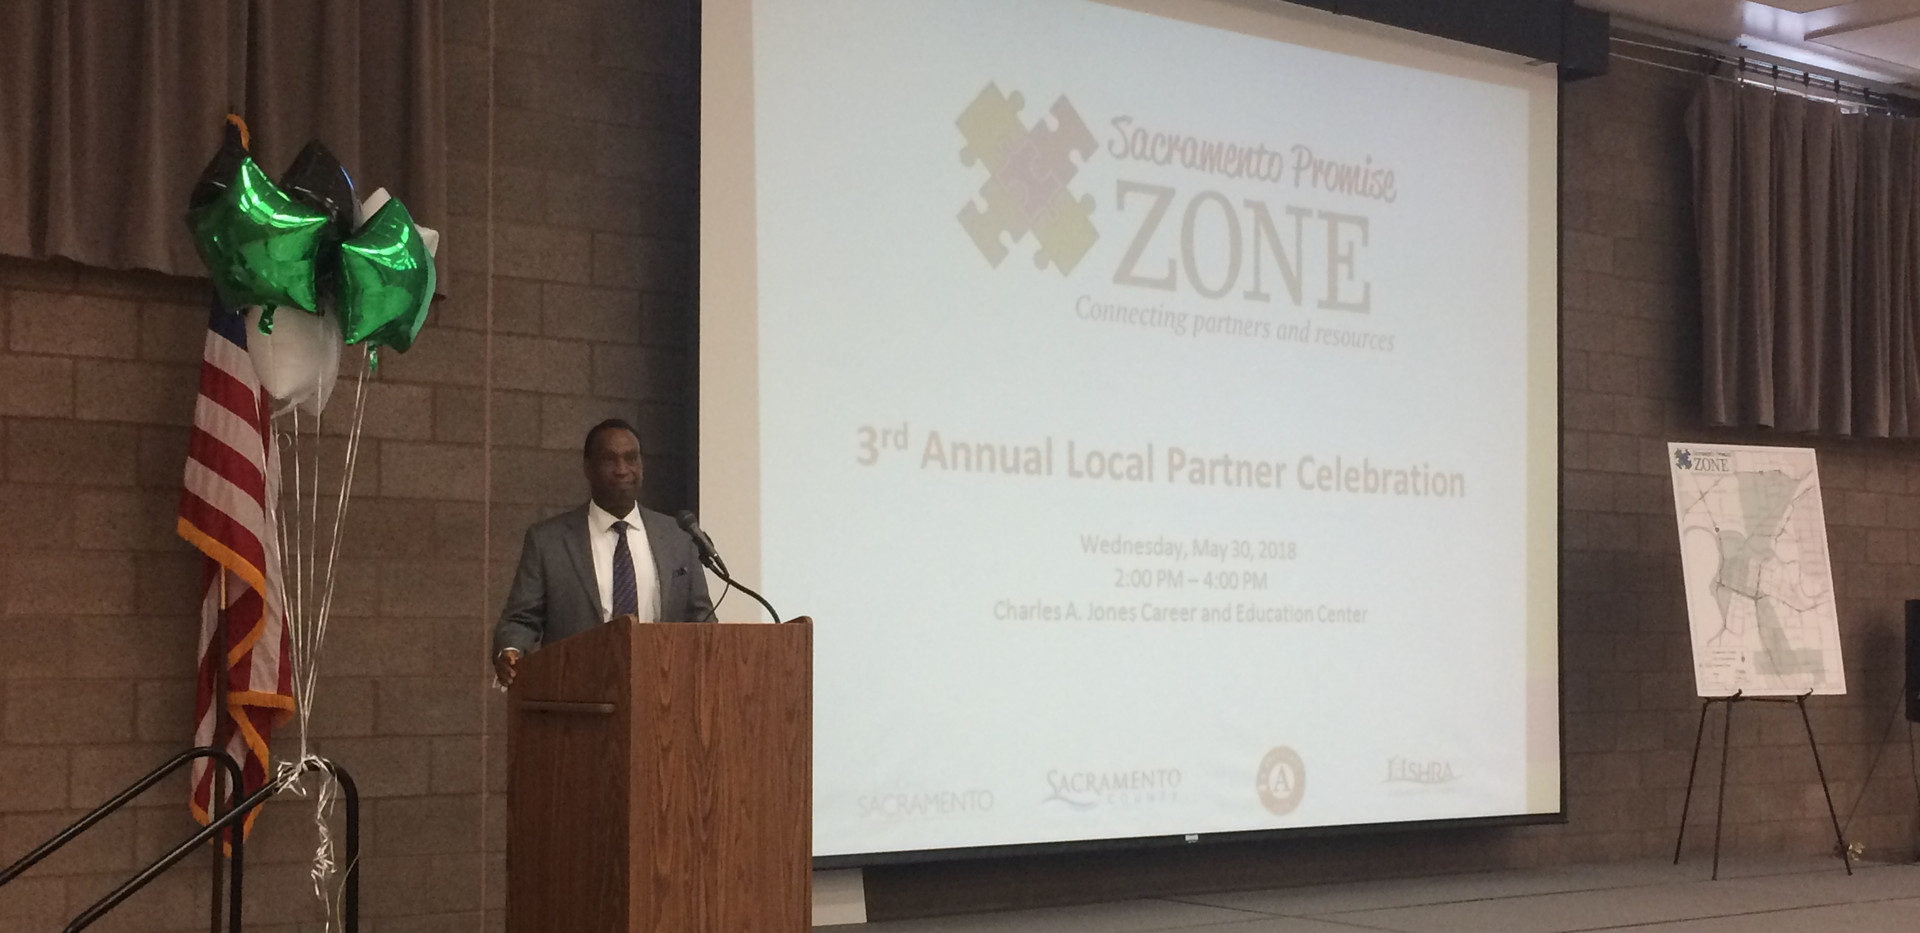 3rd Annual Local Partner Celebration